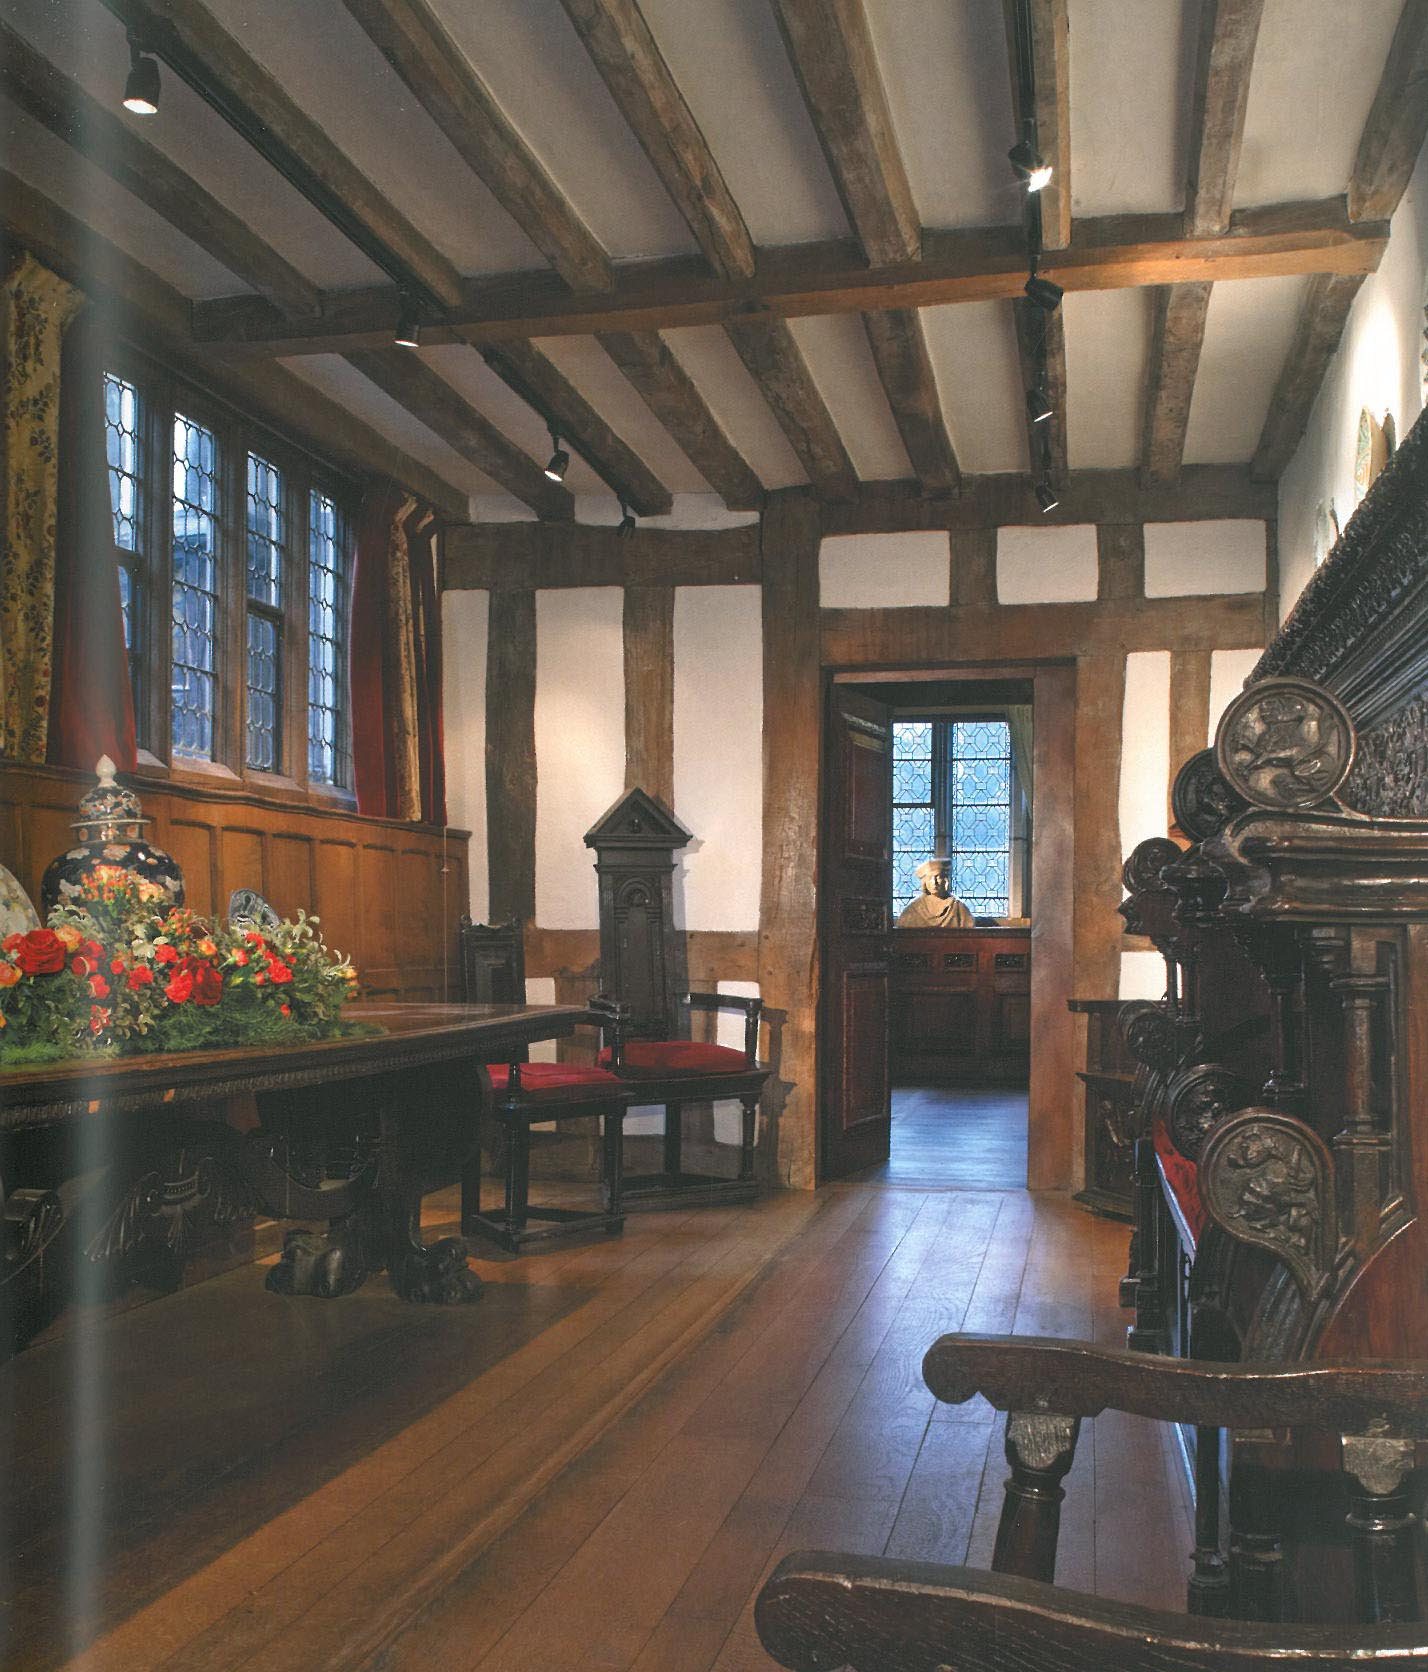 The Entrance Hall to Hever Castle. This was added to the Tudor manor house in 1506 by Thomas Bullen, Anne's father. Thomas, First Earl of Wilshire, and later Earl of Ormond, was a gifted linguist and a trusted diplomat. The furnishings that today adorn the space include a 1480 choir stall (on the right), and a 1565 Italian refectory table (on the left). Image courtesy of Hever Castle.